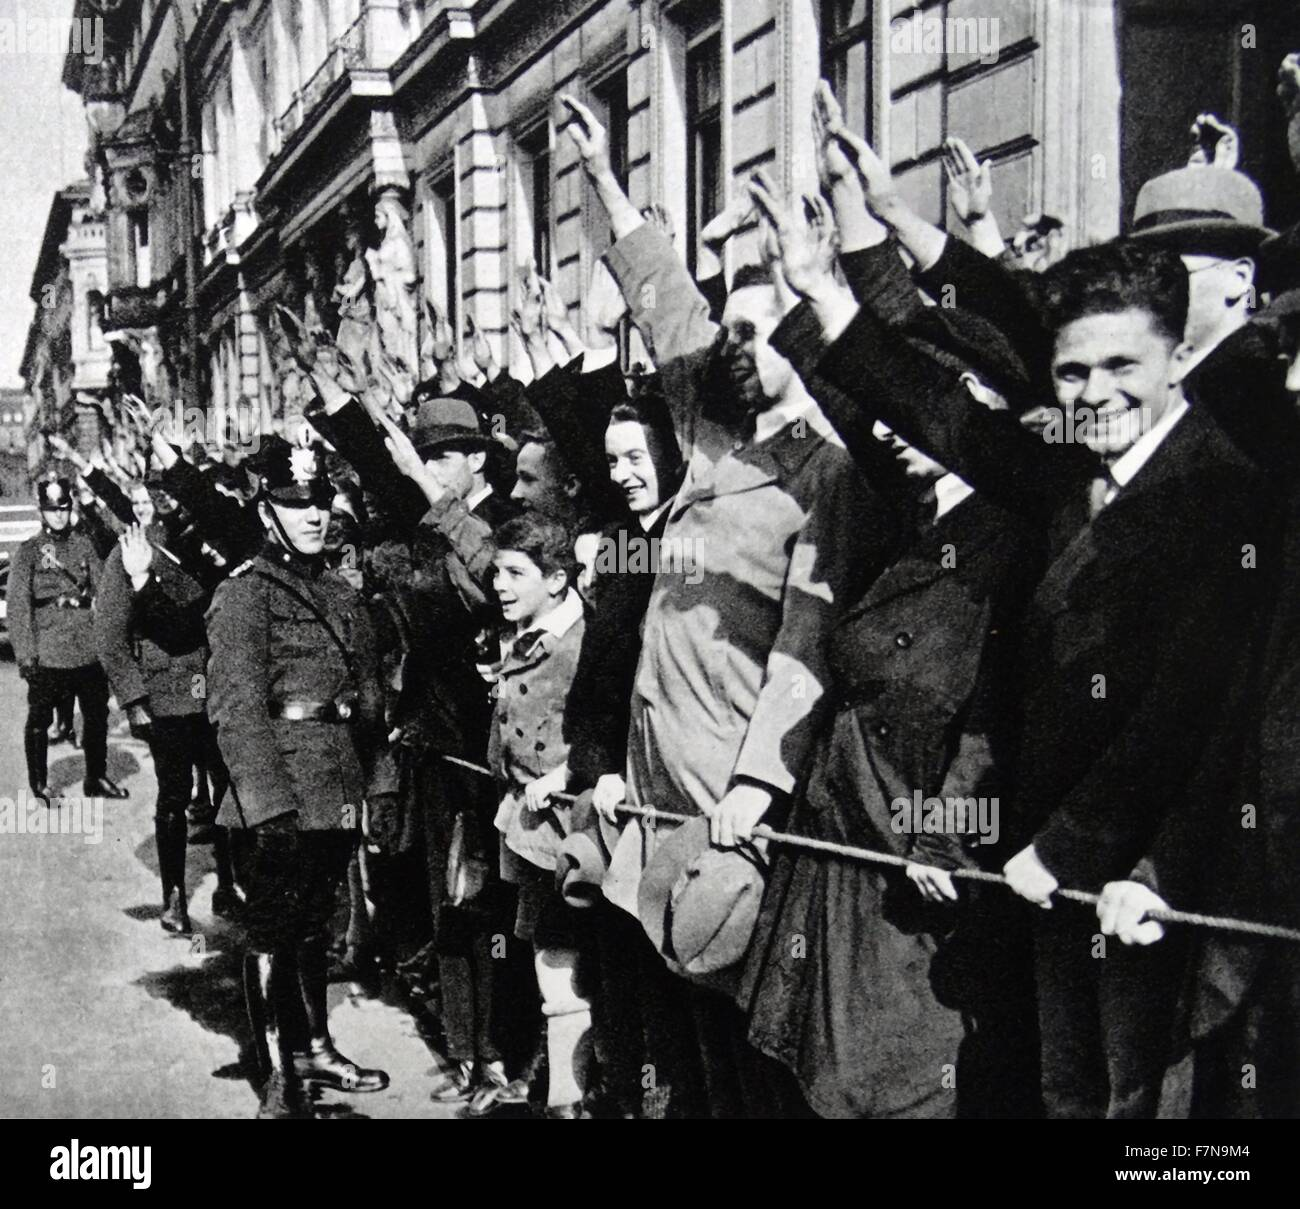 Photograph of German youths saluting in support of Adolf Hitler. Dated 1940 - Stock Image